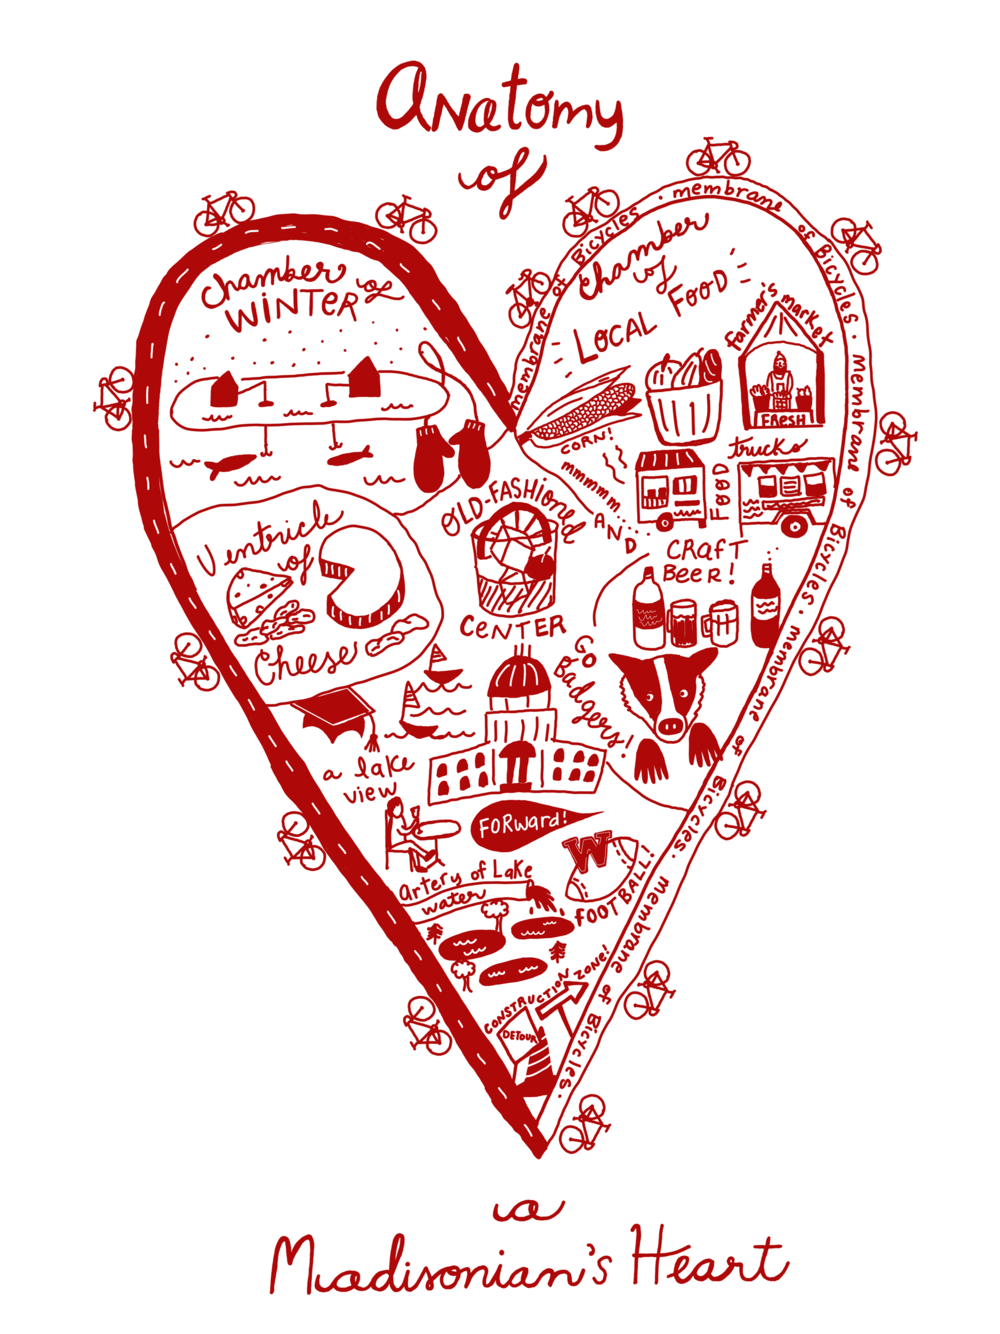 Anatomy of a Madisonian's Heart